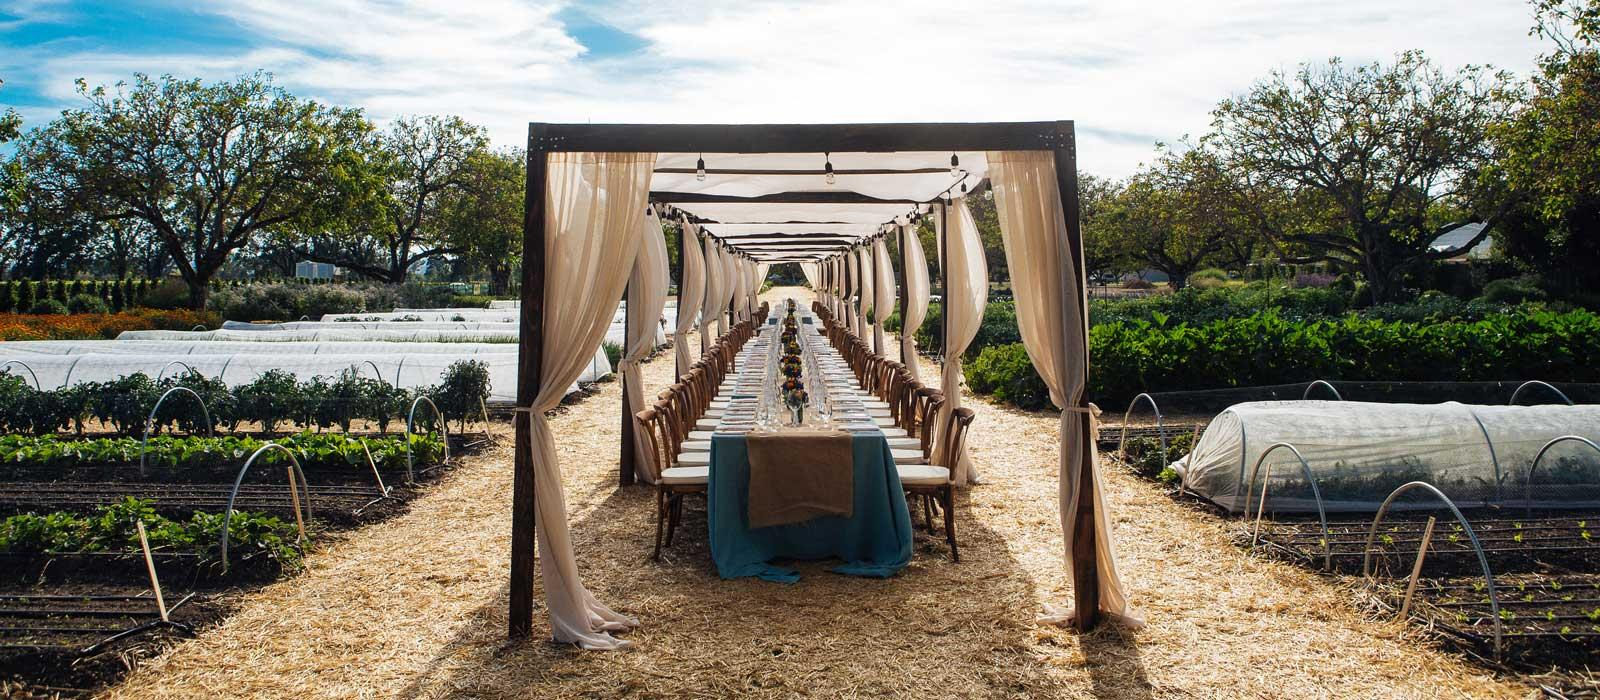 kendall-jackson farm-to-table events